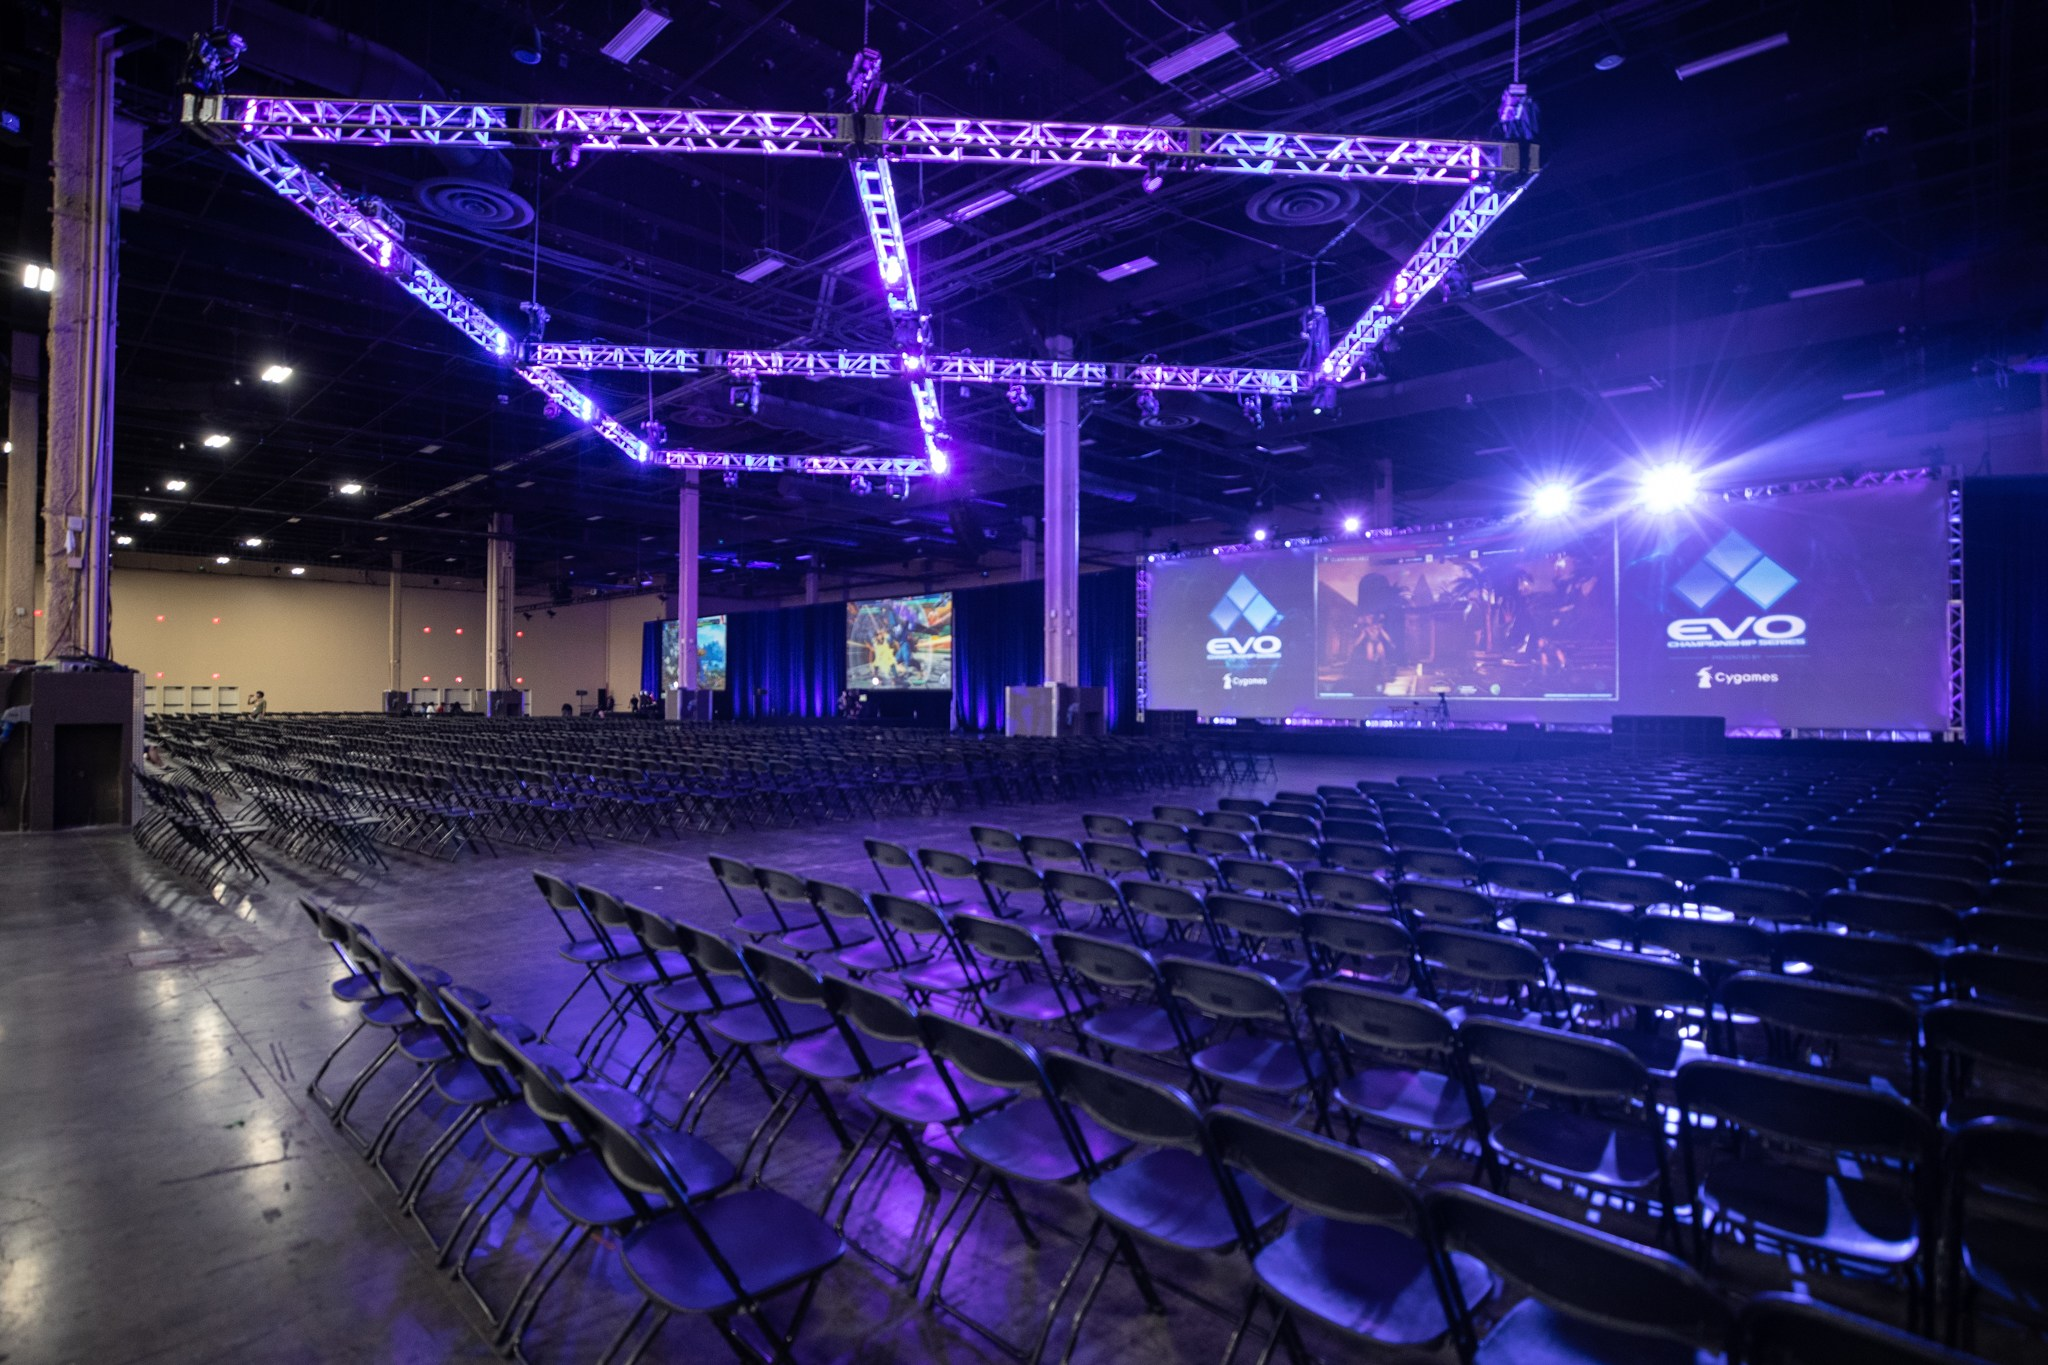 Evo 2018: Renowned tournament began with $10,000 and a UCLA